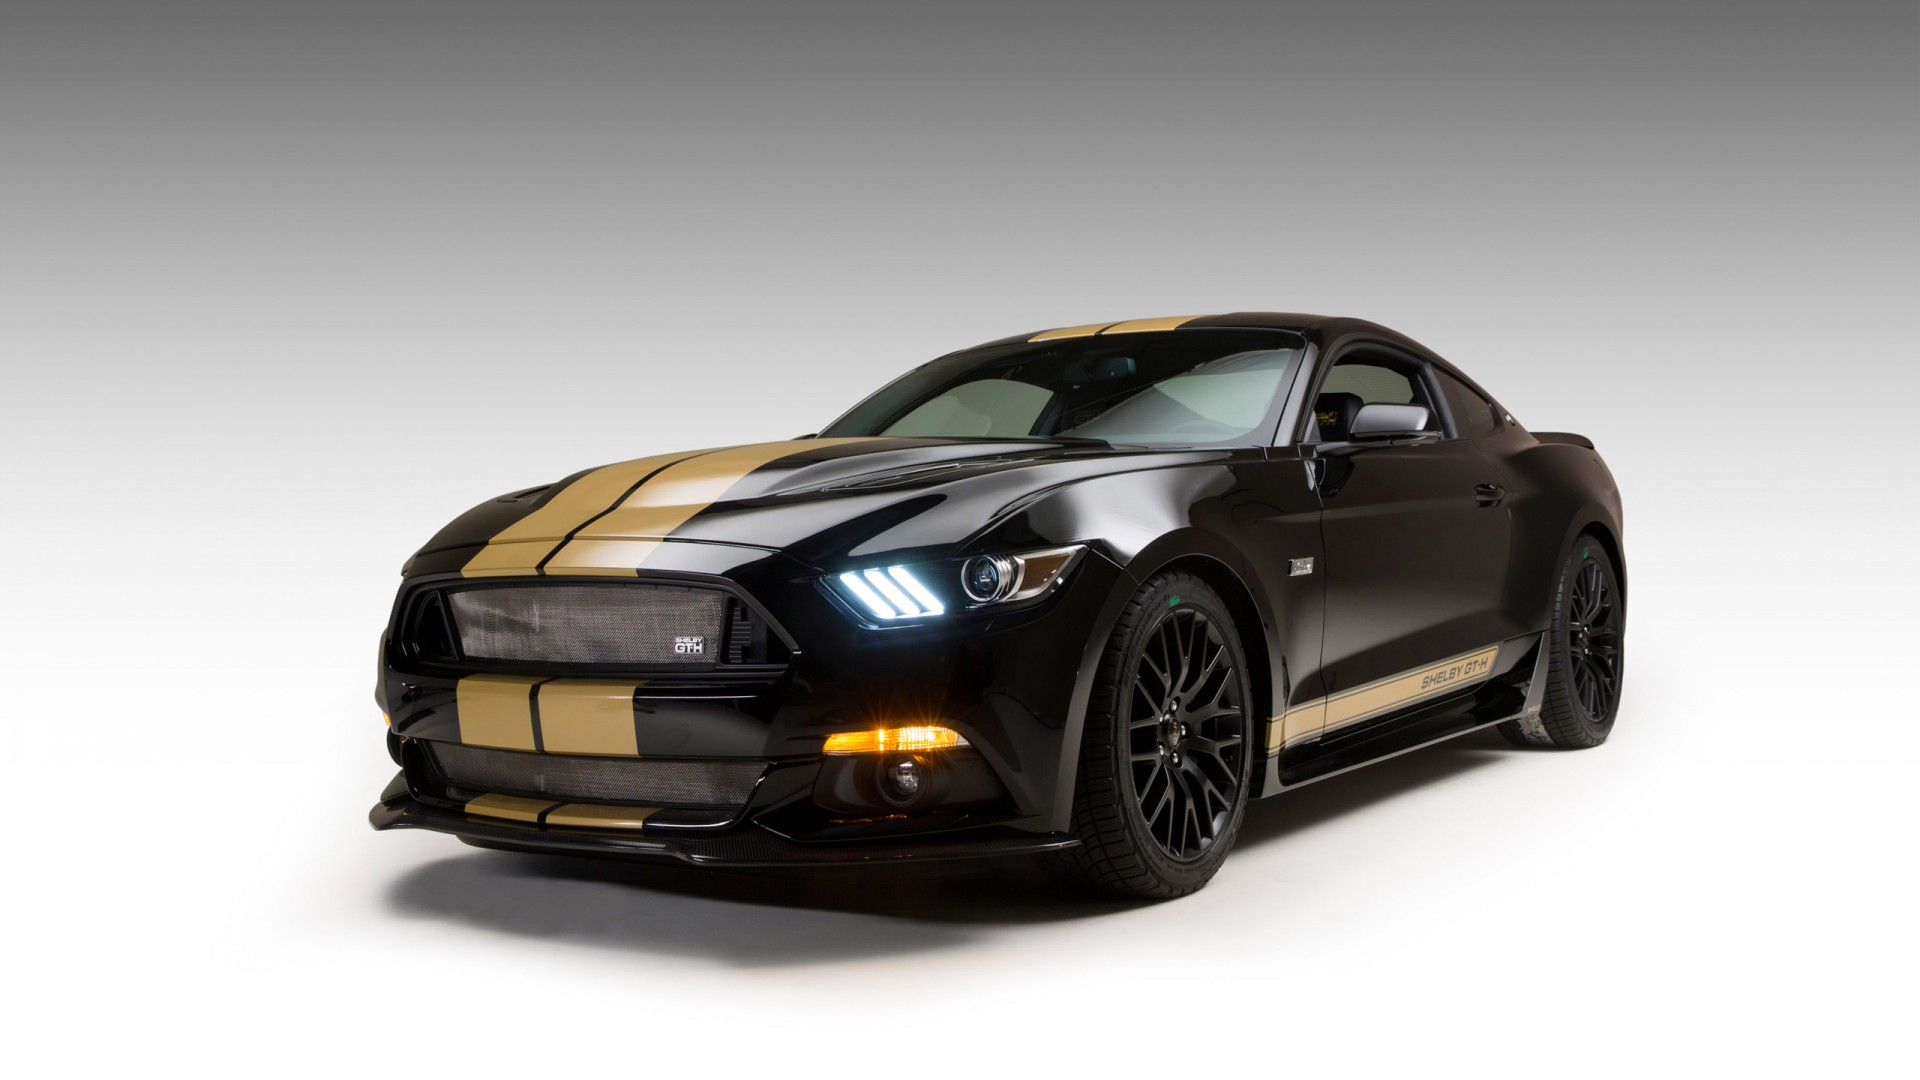 Ford Shelby GT h 2016 Wallpaper | HD Car Wallpapers | ID #6597